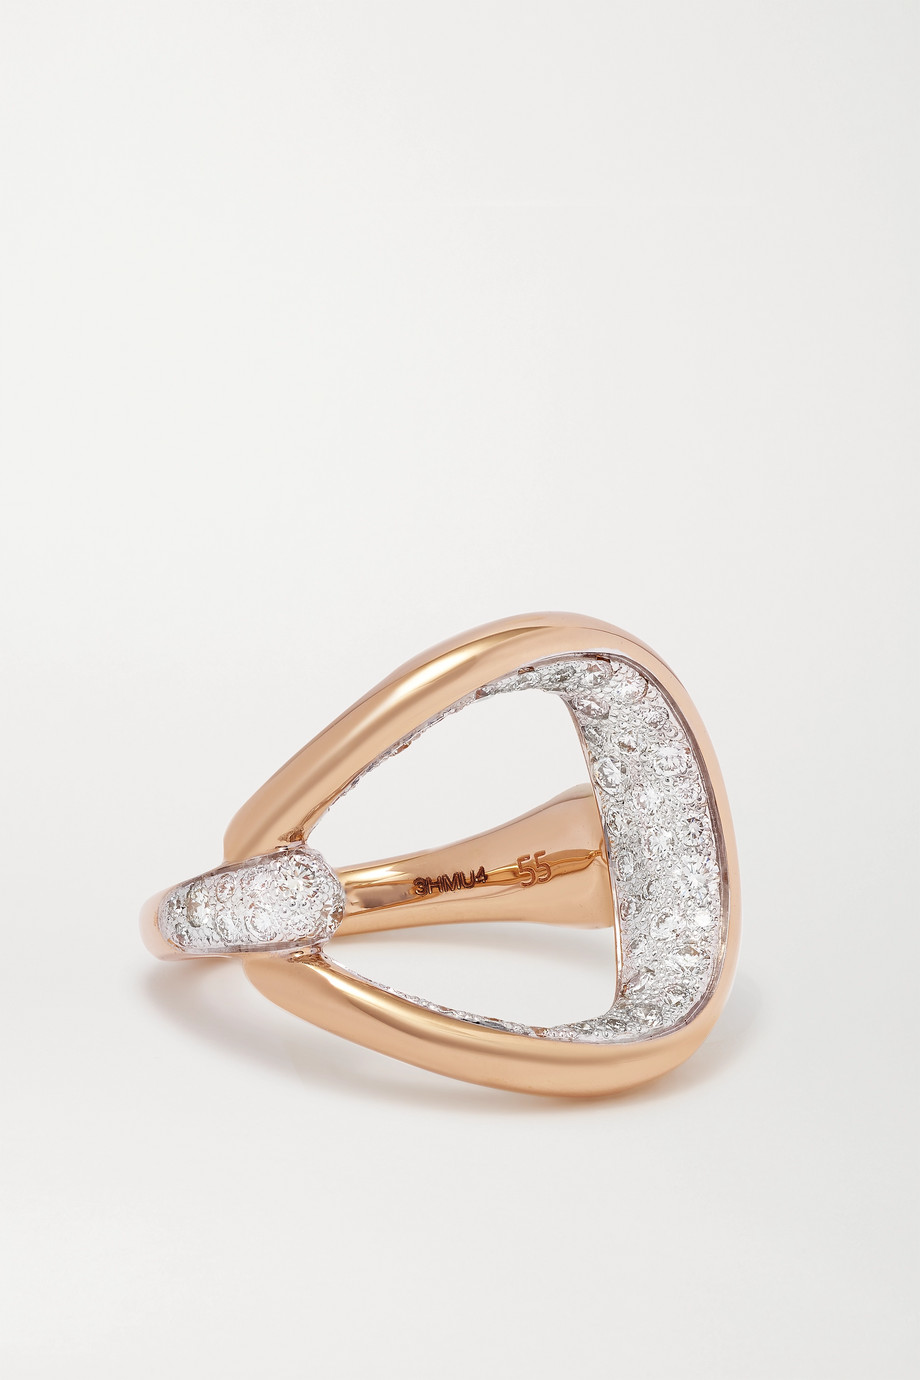 POMELLATO Fantina 18-karat rose gold diamond ring